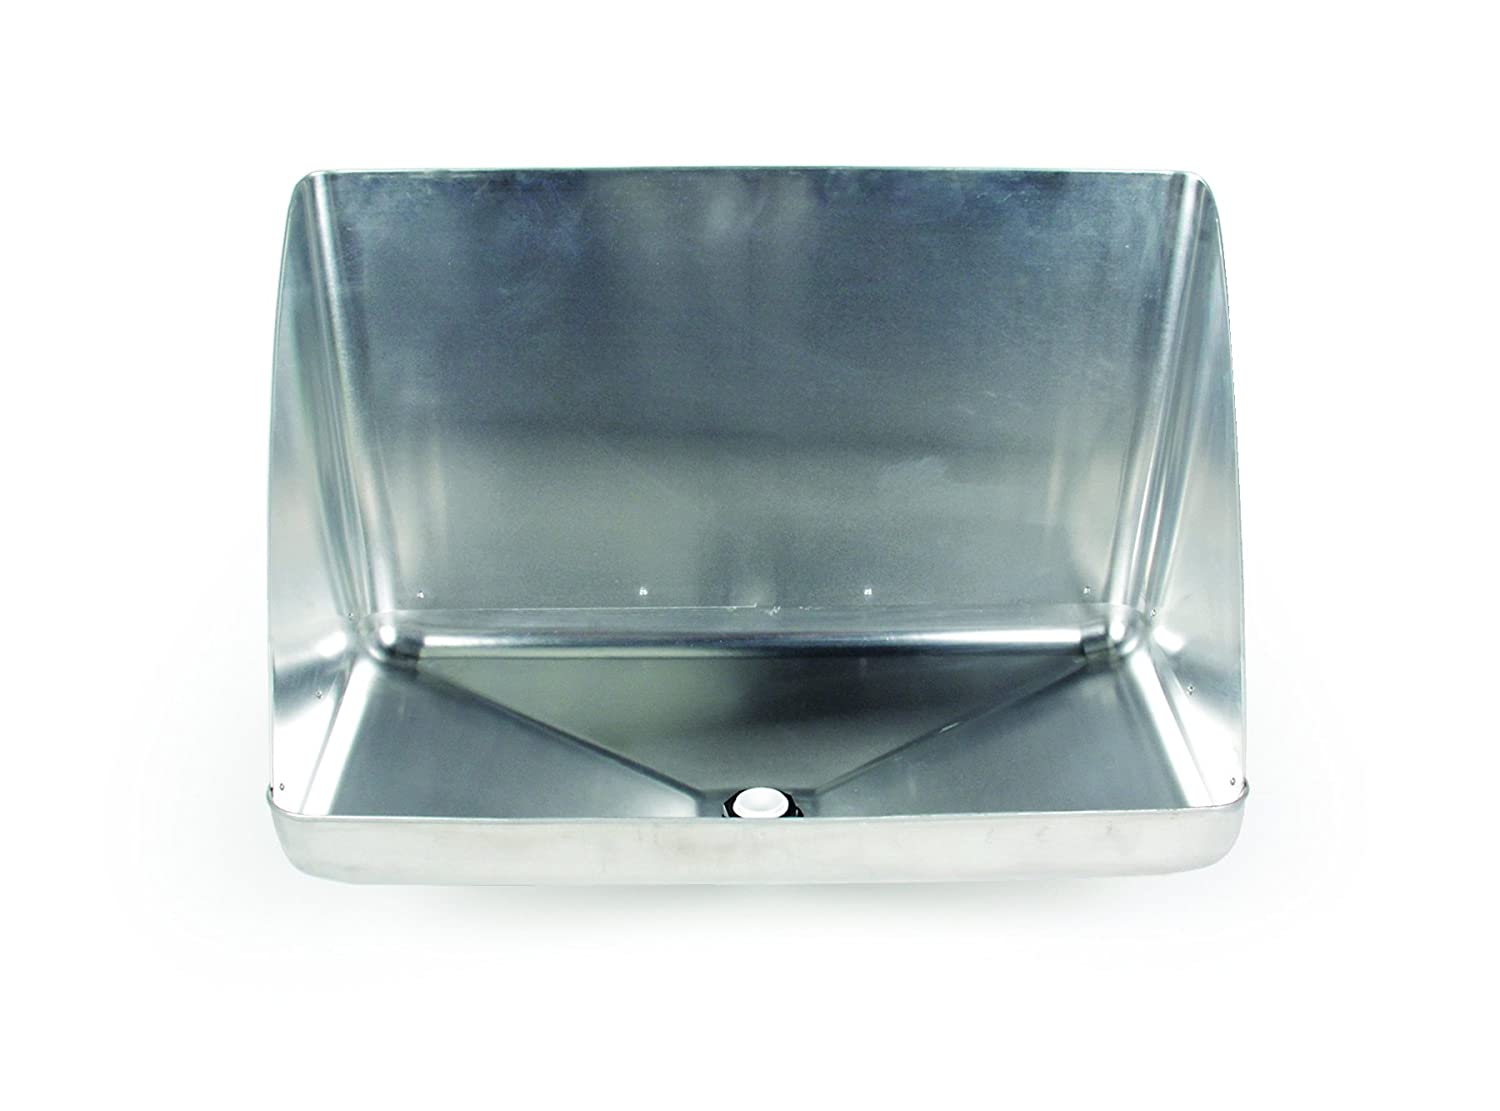 Camco 11430 Aluminum Tankless Water Heater Drain Pan with PVC Fitting